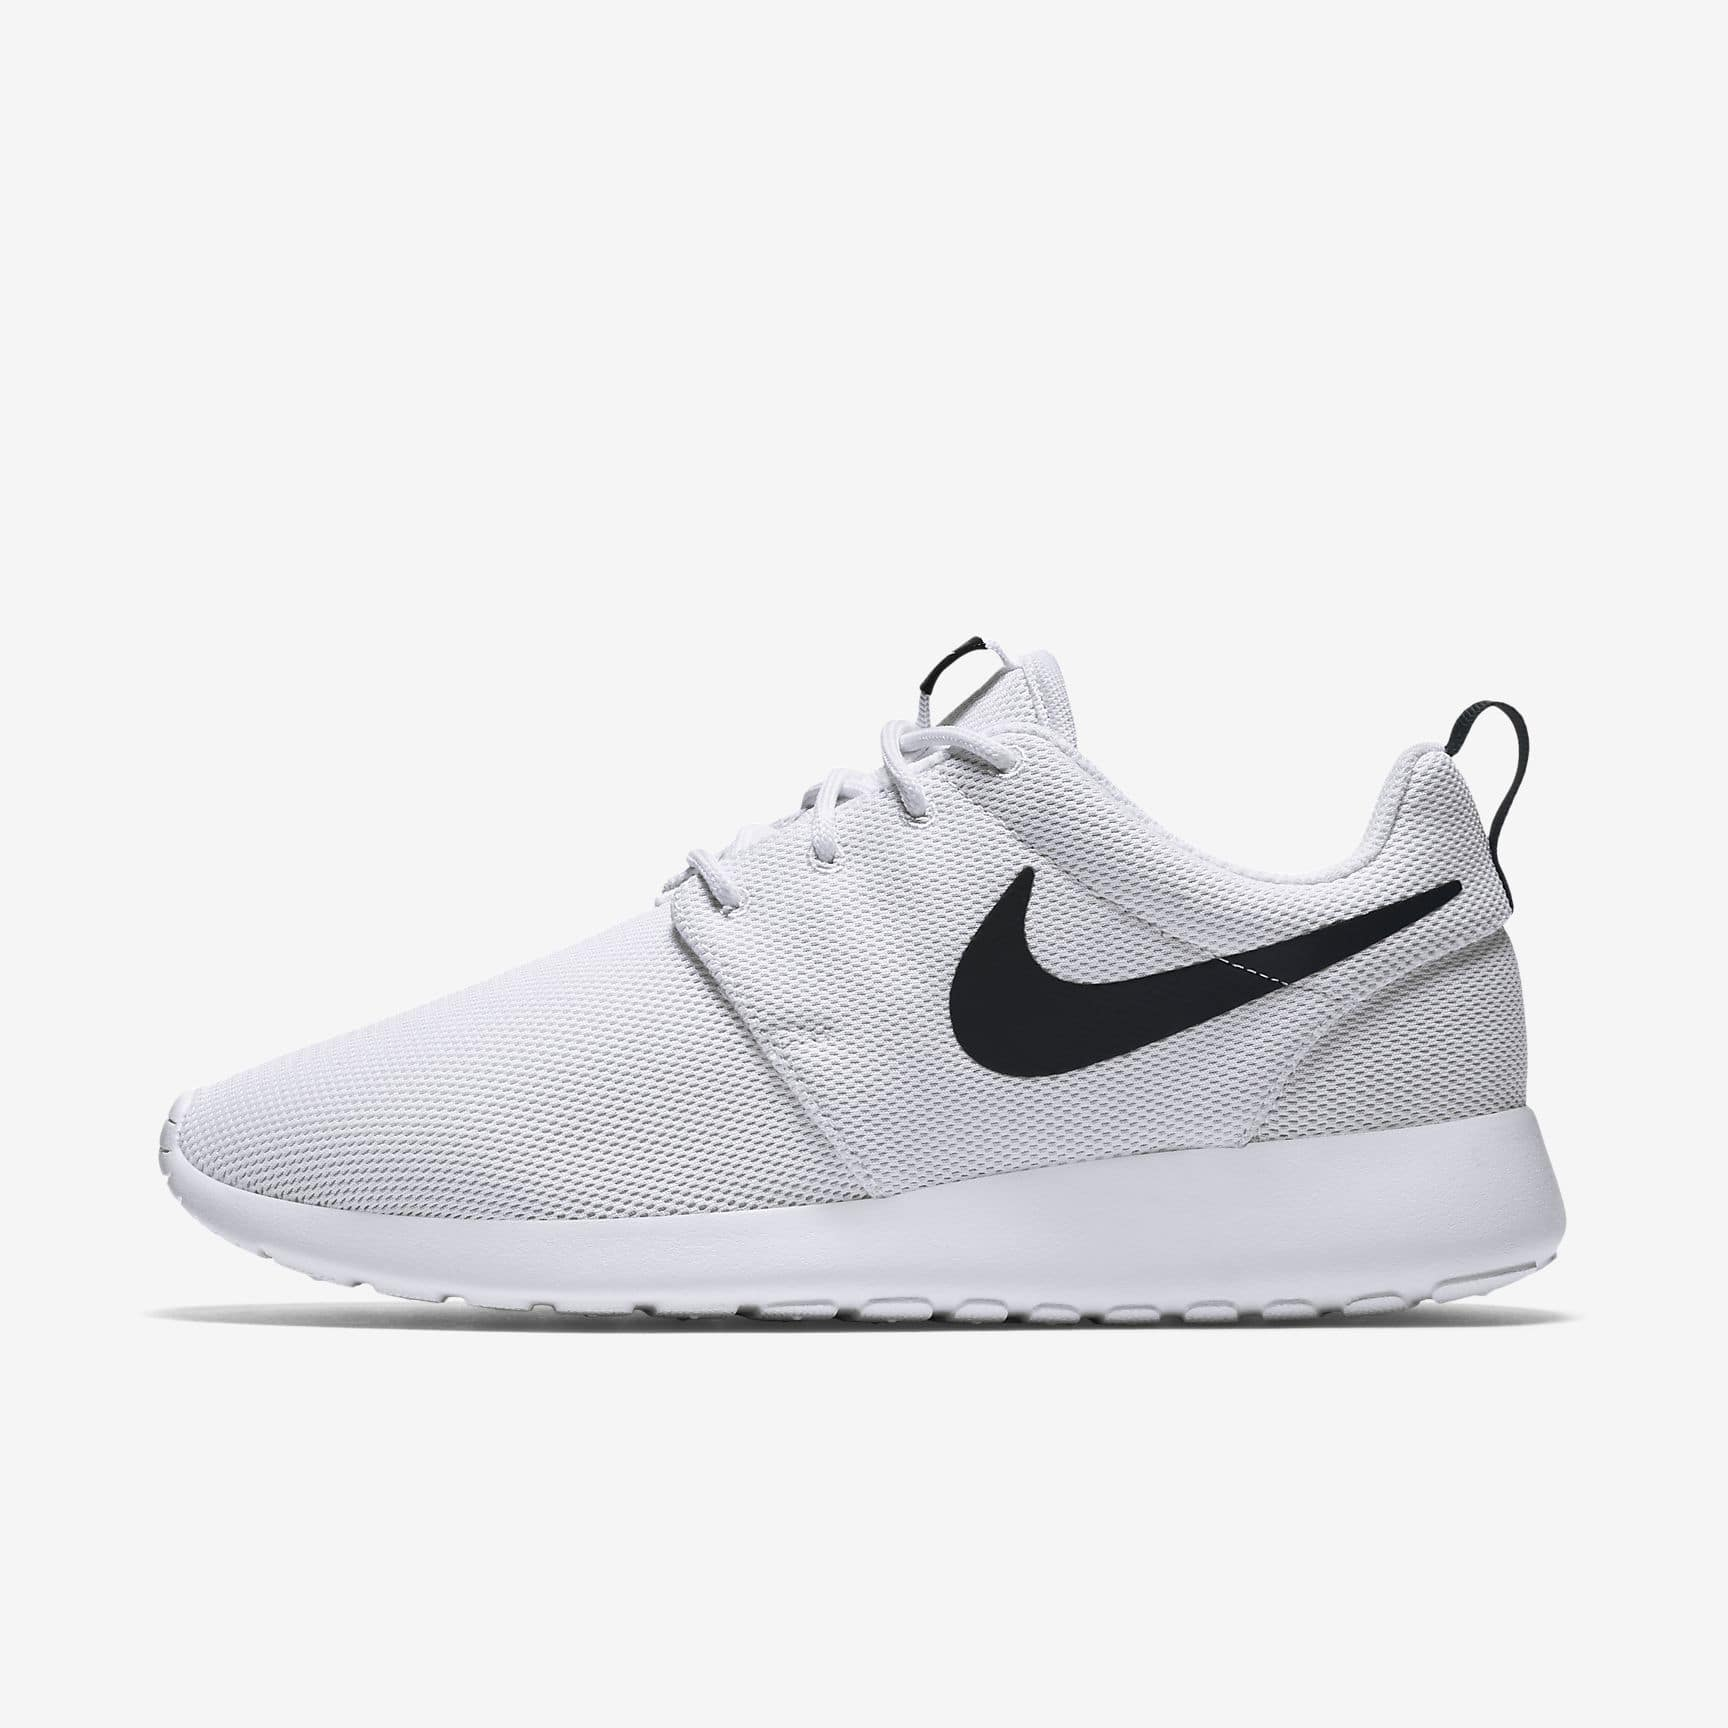 spain nike roshe run speckled white womens shoes sail black